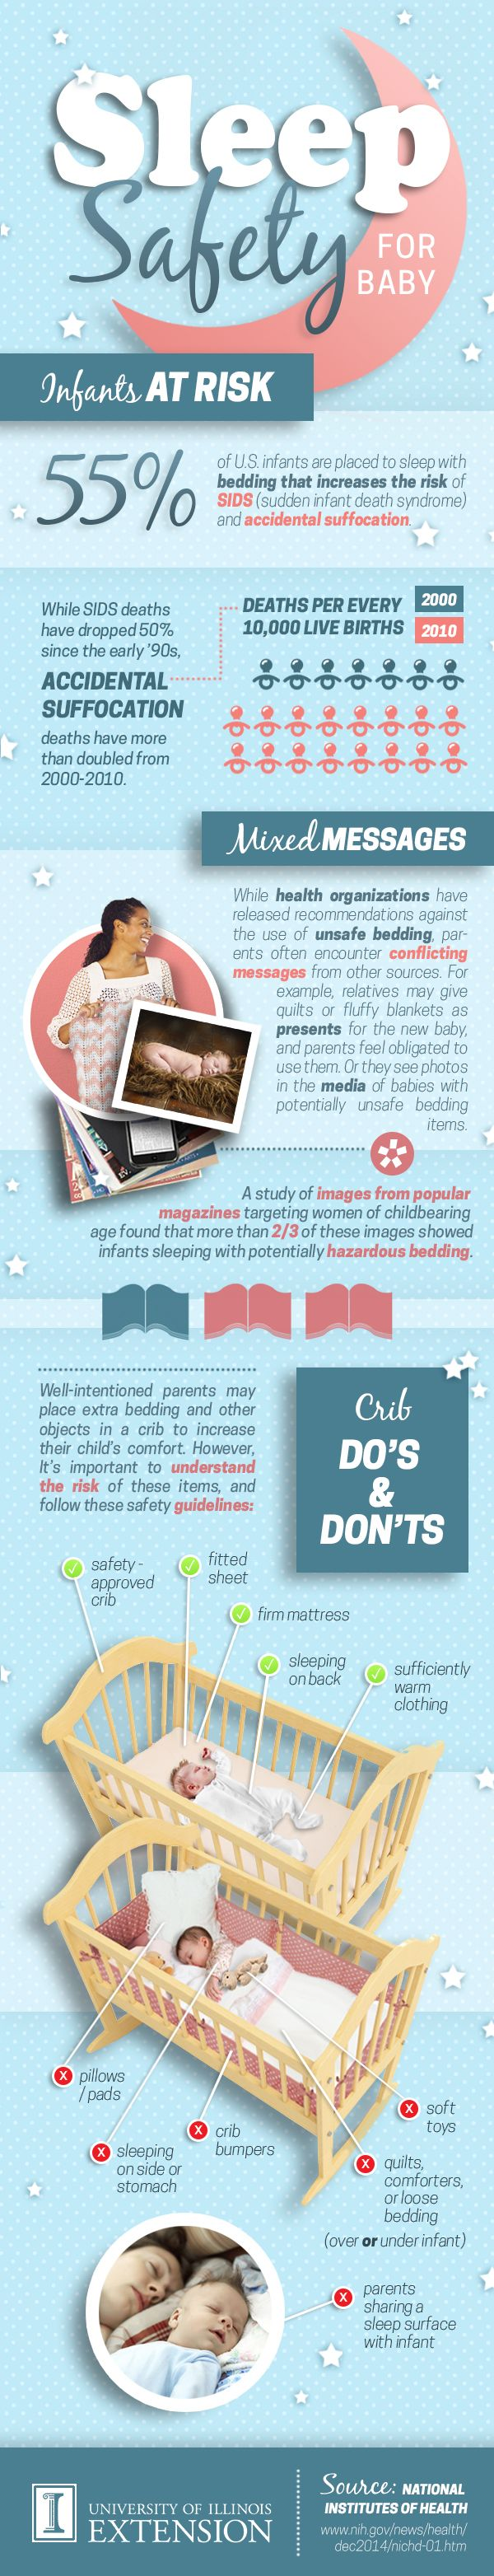 Sleep safety tips for infants.